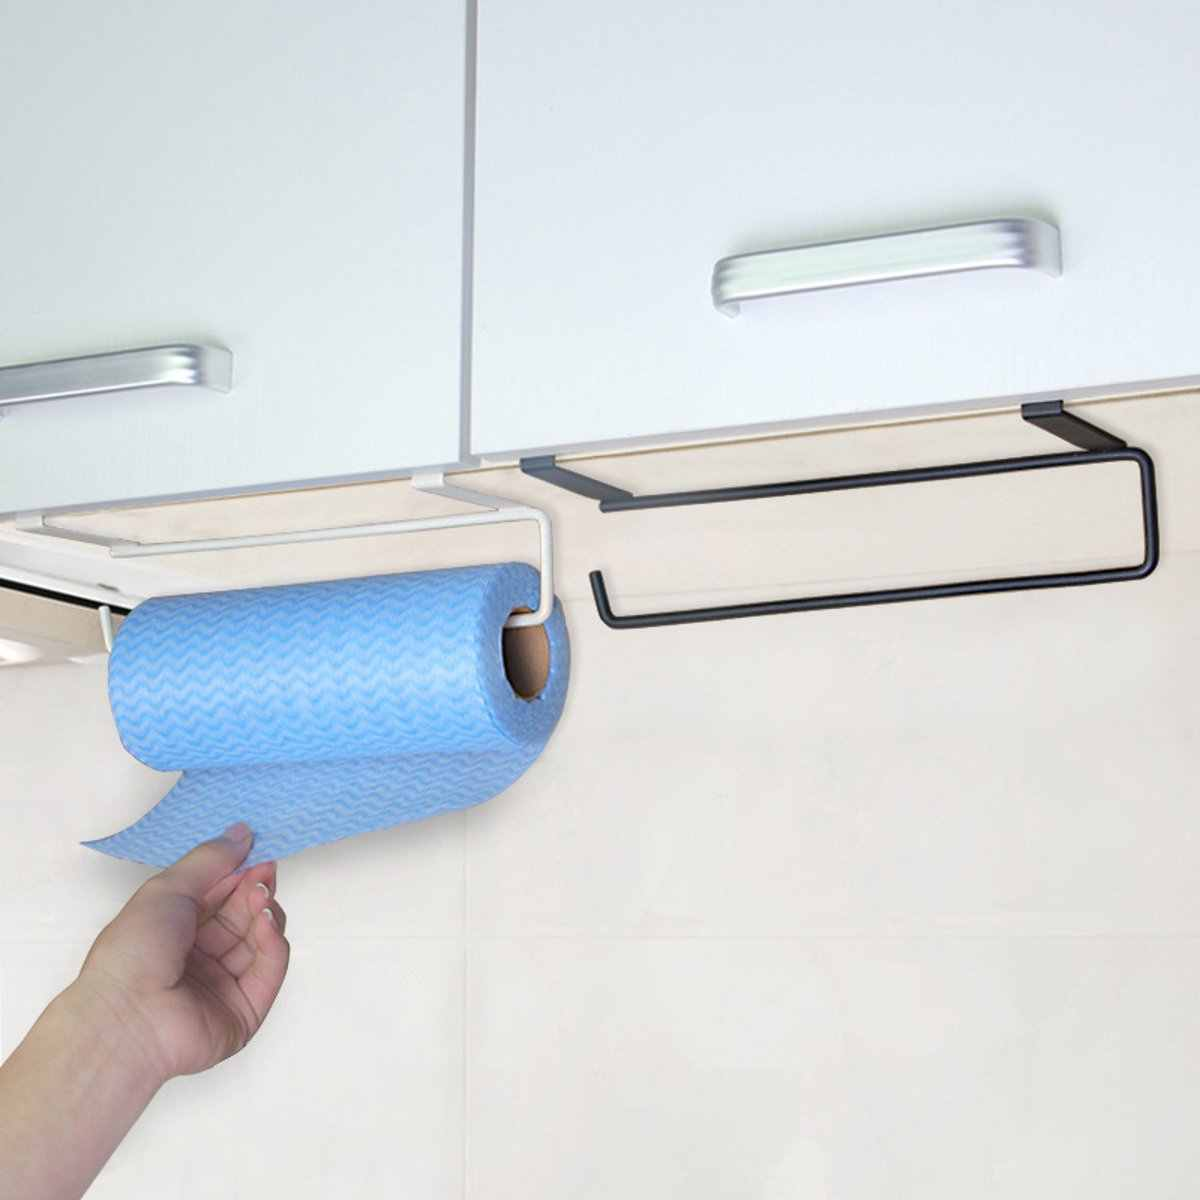 Metal Iron Towel Rack Storage Holder Hanging Kitchen Roll Paper Organizer Tissue Hanger Towel Bar Bathroom Kitchen Hardware